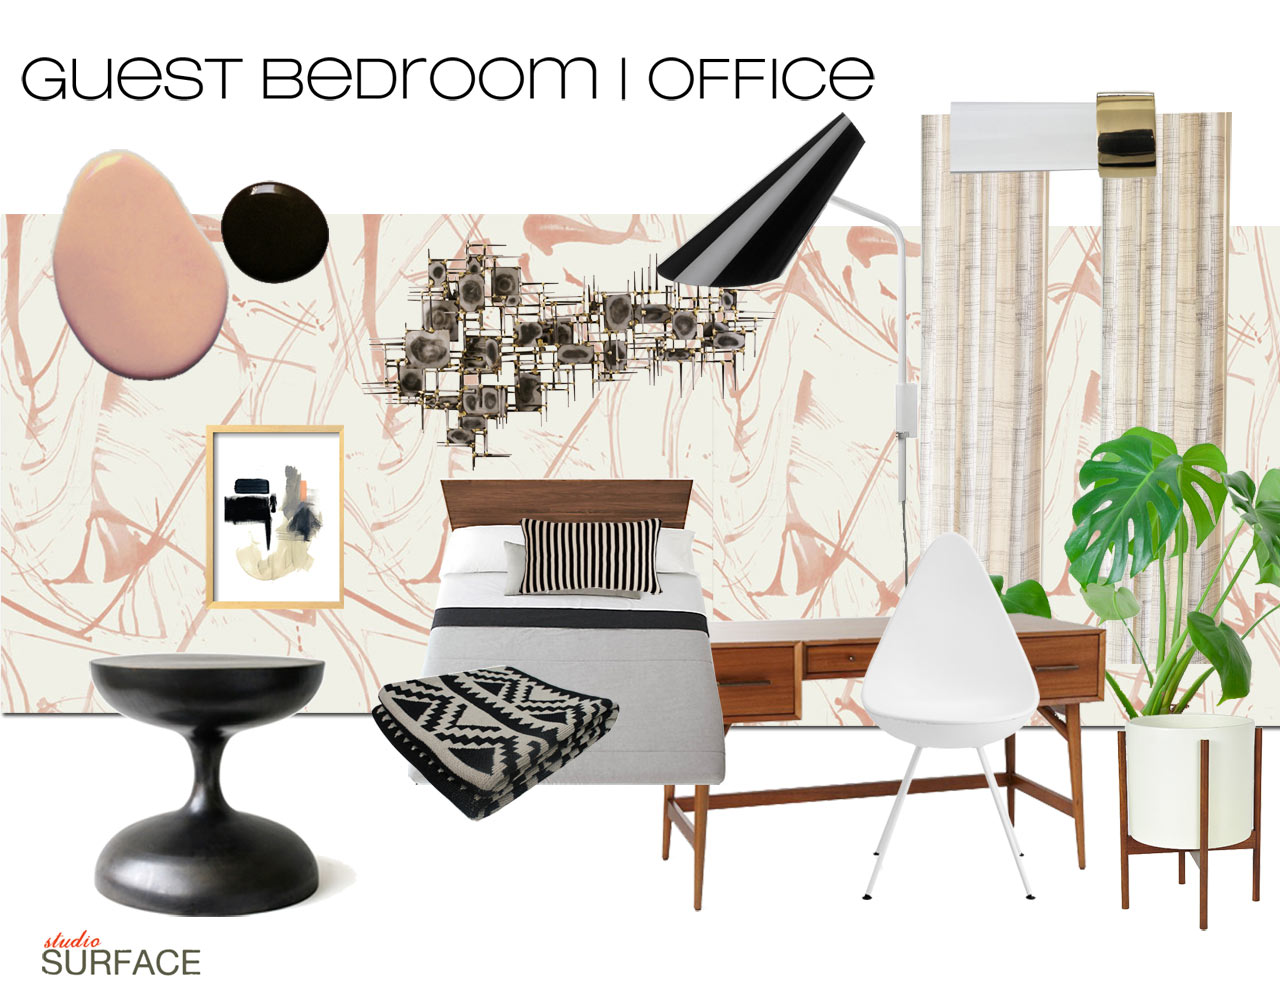 design-milk-final-room-design-studiosurface